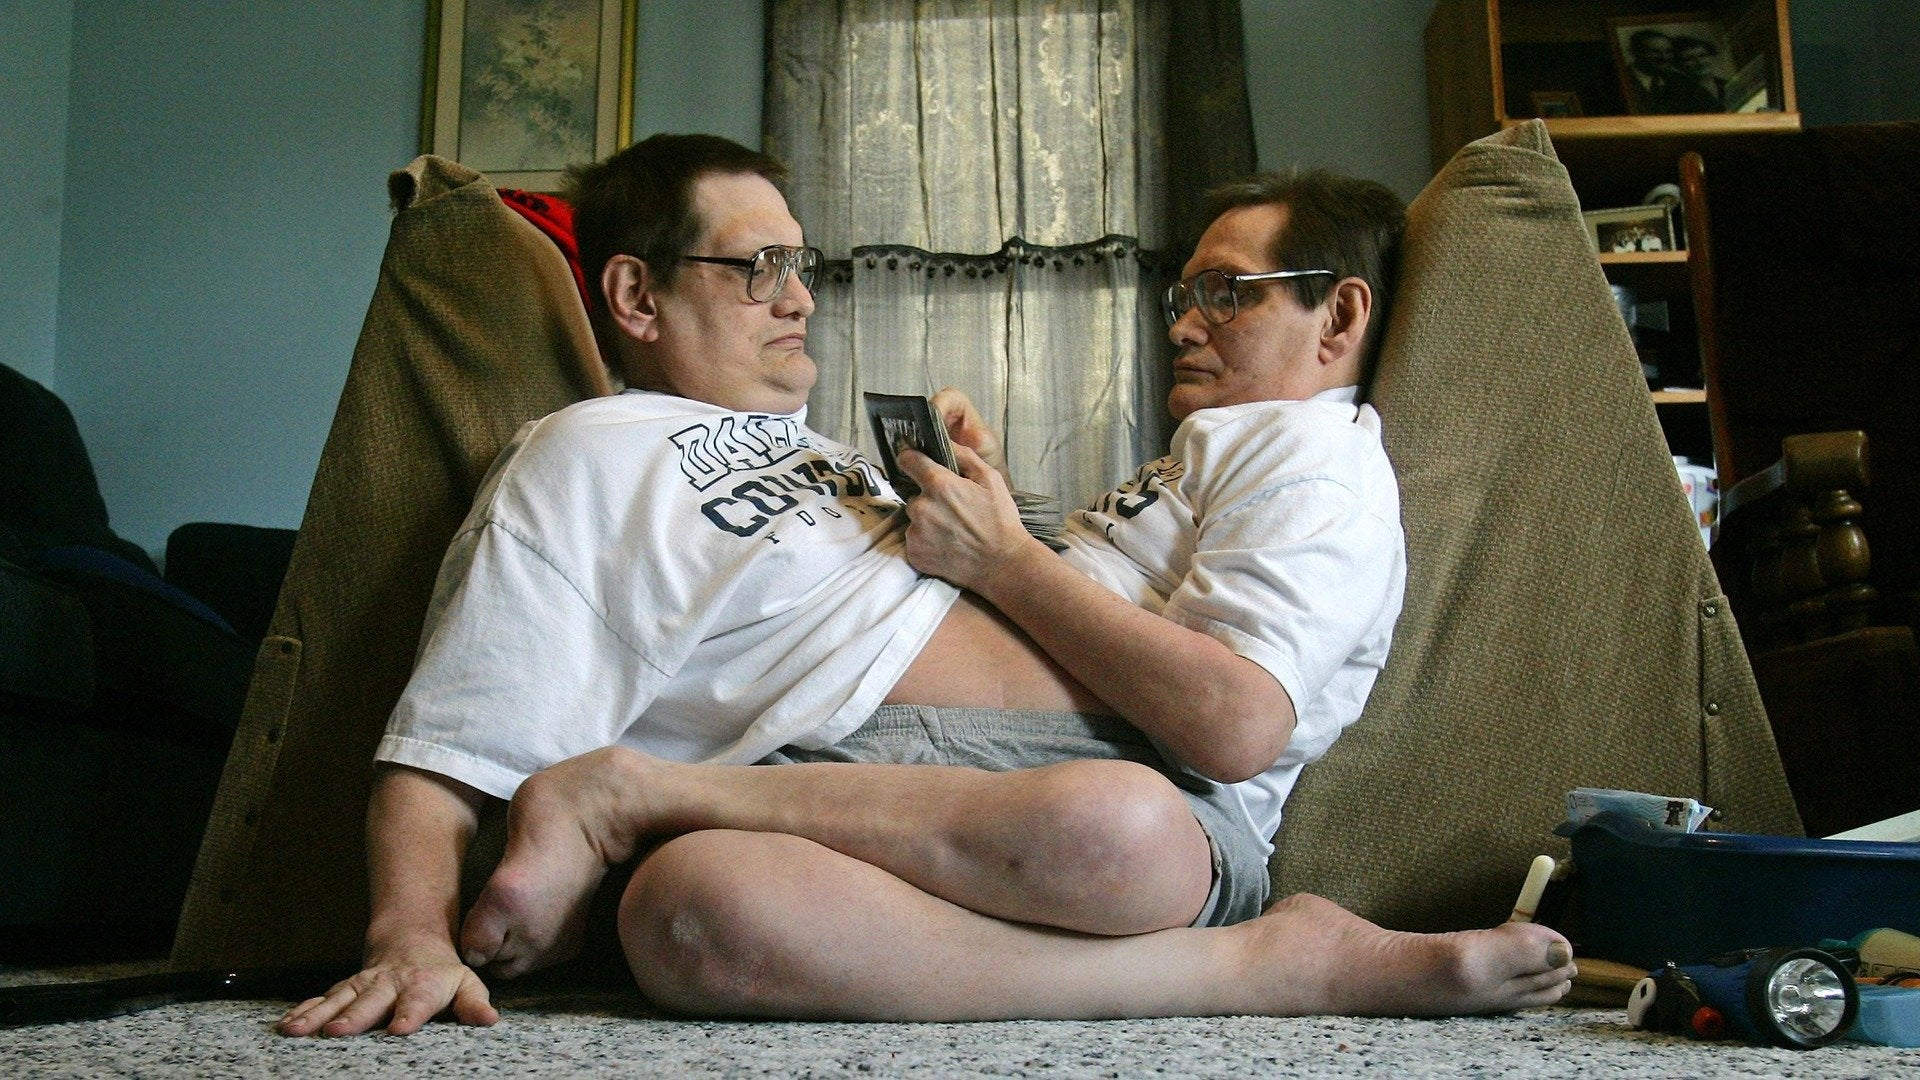 World's Oldest Conjoined Twins Move Home